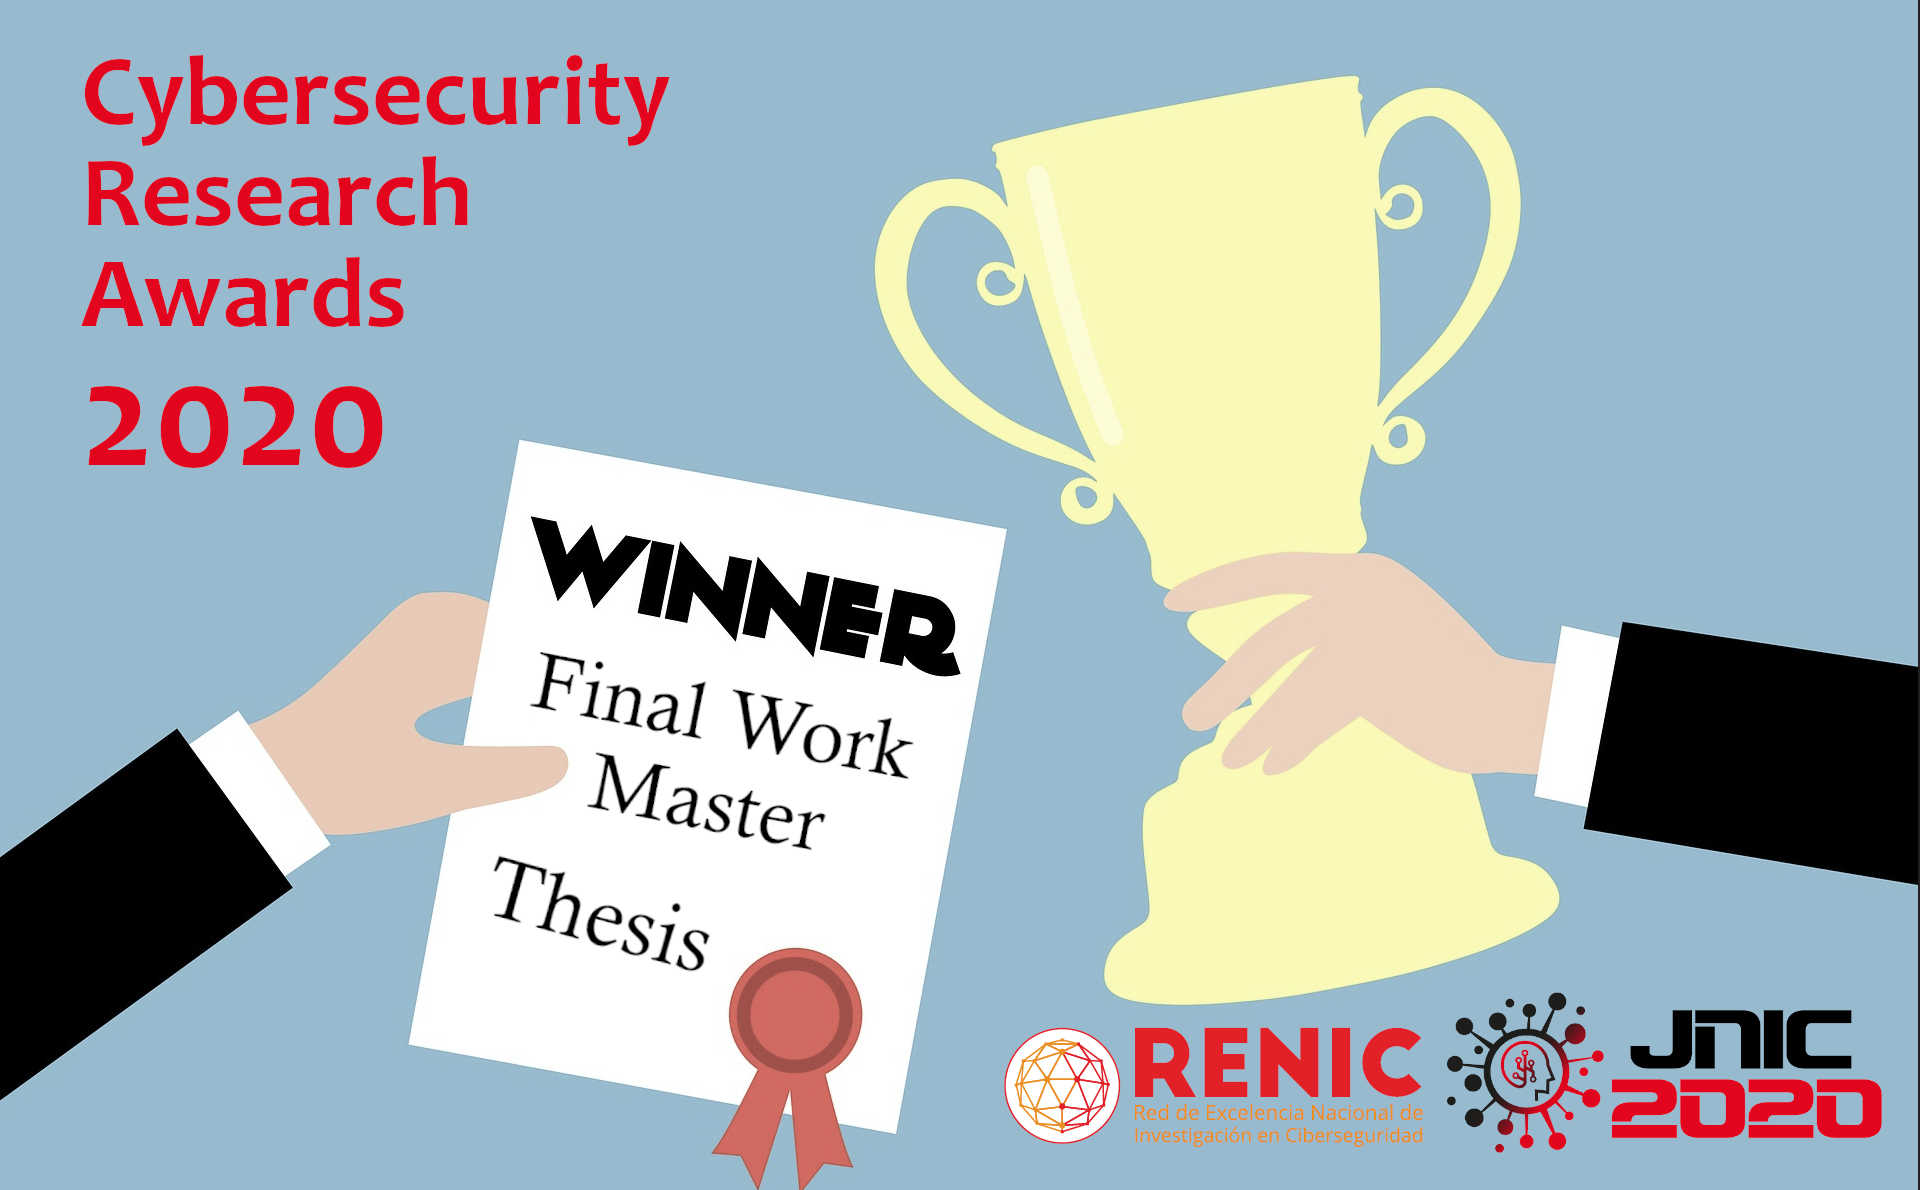 Cybersecurity Research Awards 2020 convened